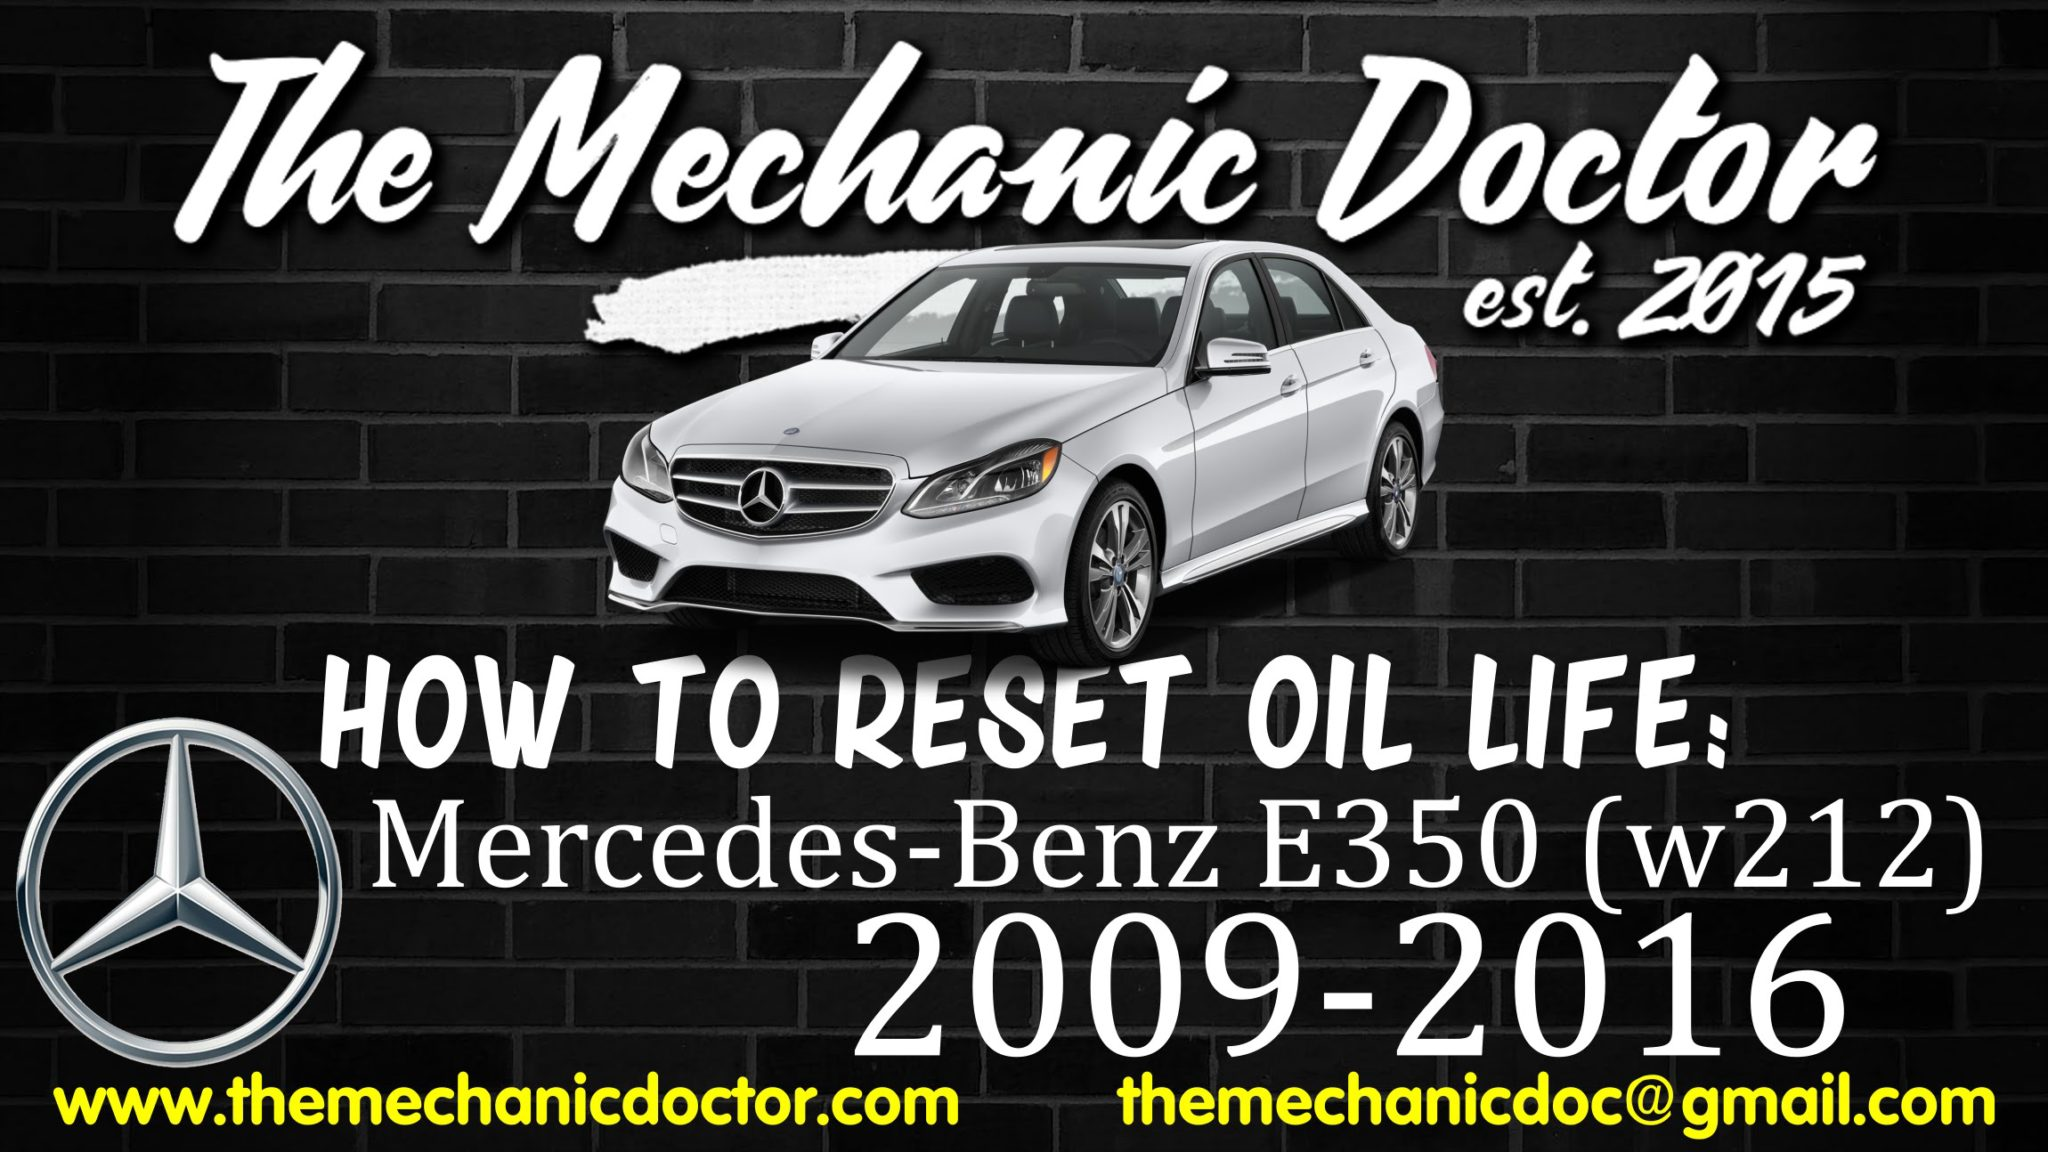 How to reset oil life mercedes benz e350 w212 2009 for Mercedes benz mechanic